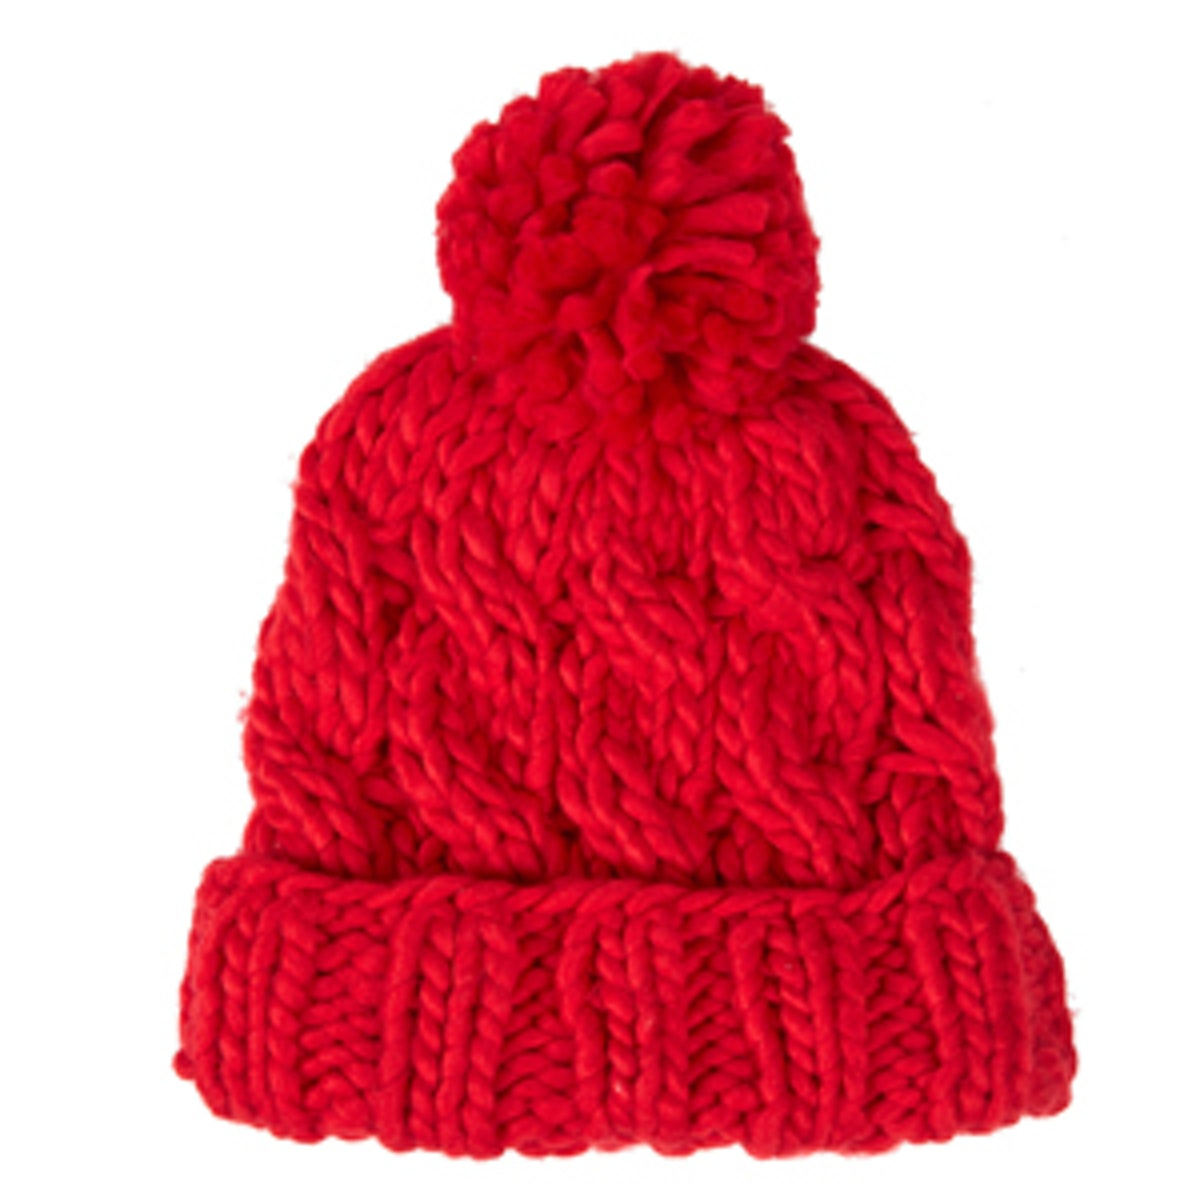 Hand-Knit Cable Beanie